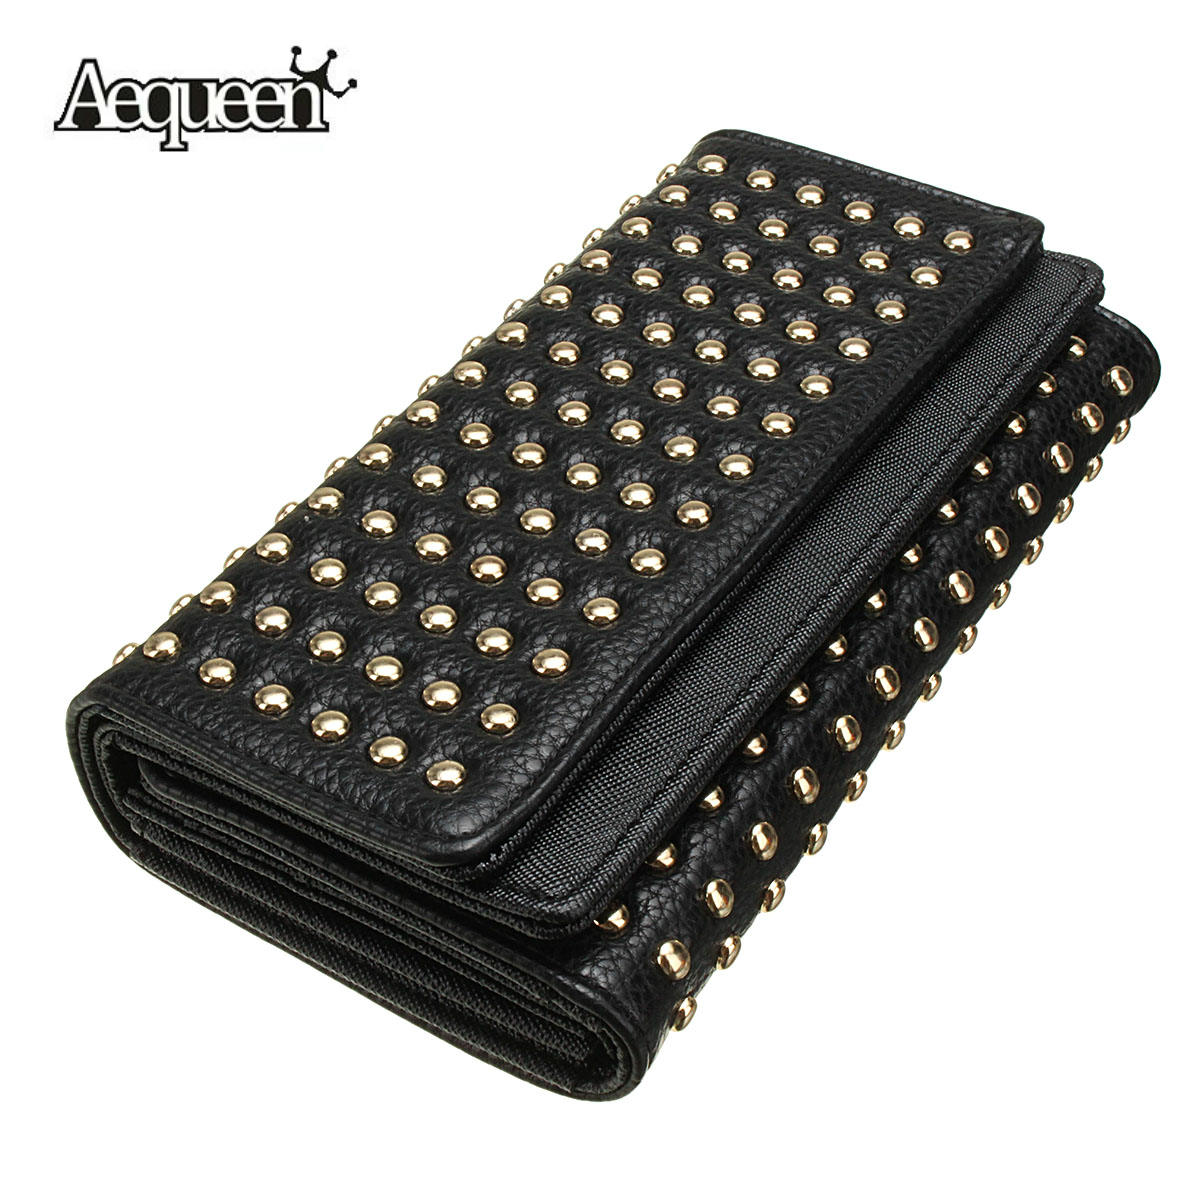 AEQUEEN Fashion Women Wallets Rivet Synthetic Leather Wallet Women's Long Design Purse Two Fold Clutch Coin Purses Pouch Card